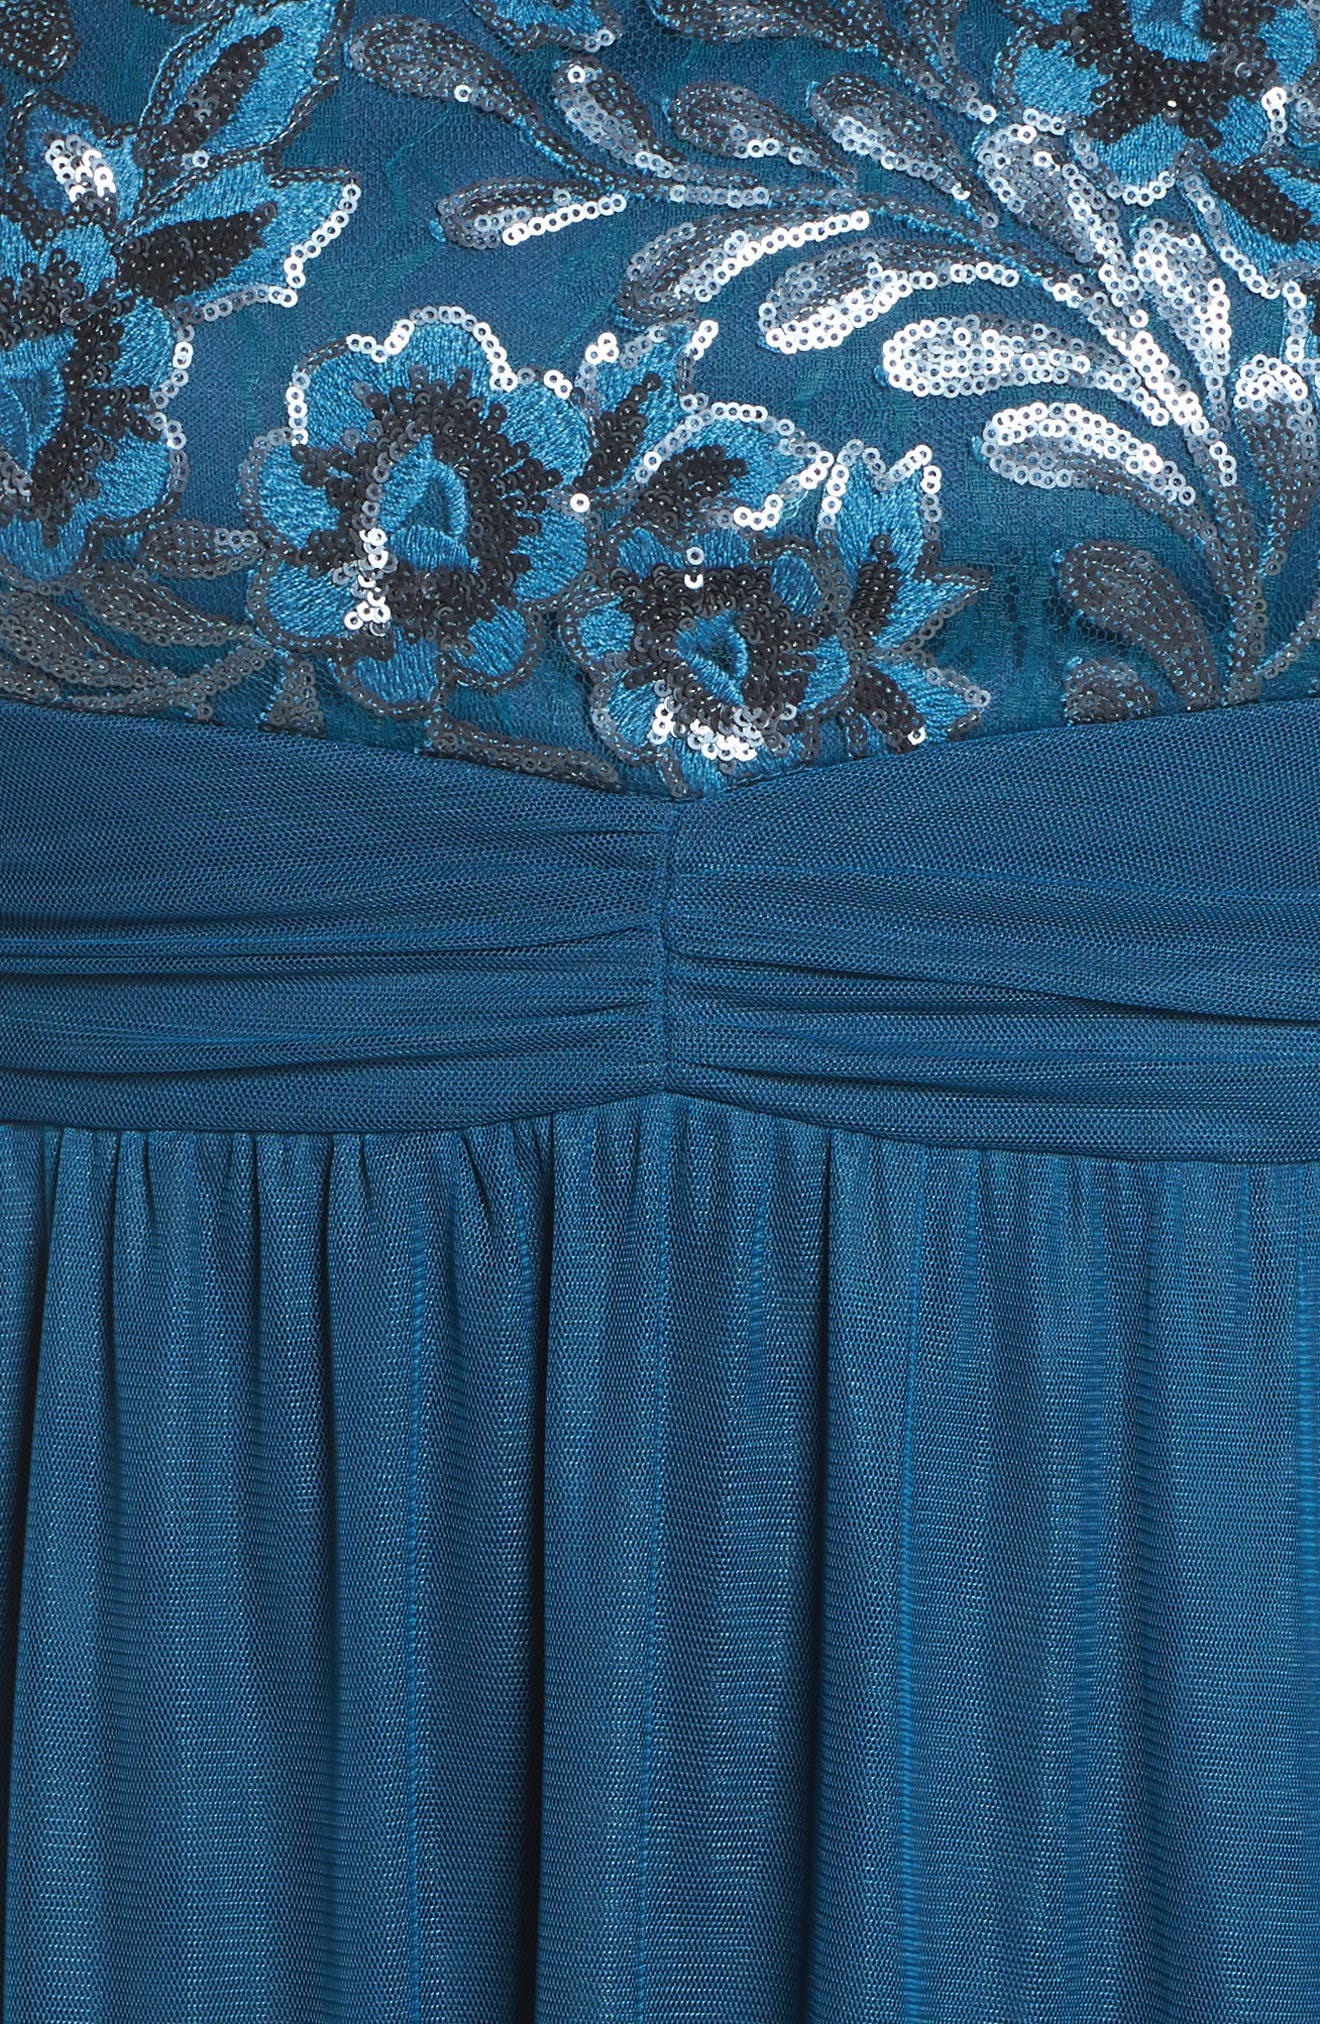 Embellished Cap Sleeve Gown,                             Alternate thumbnail 5, color,                             TEAL